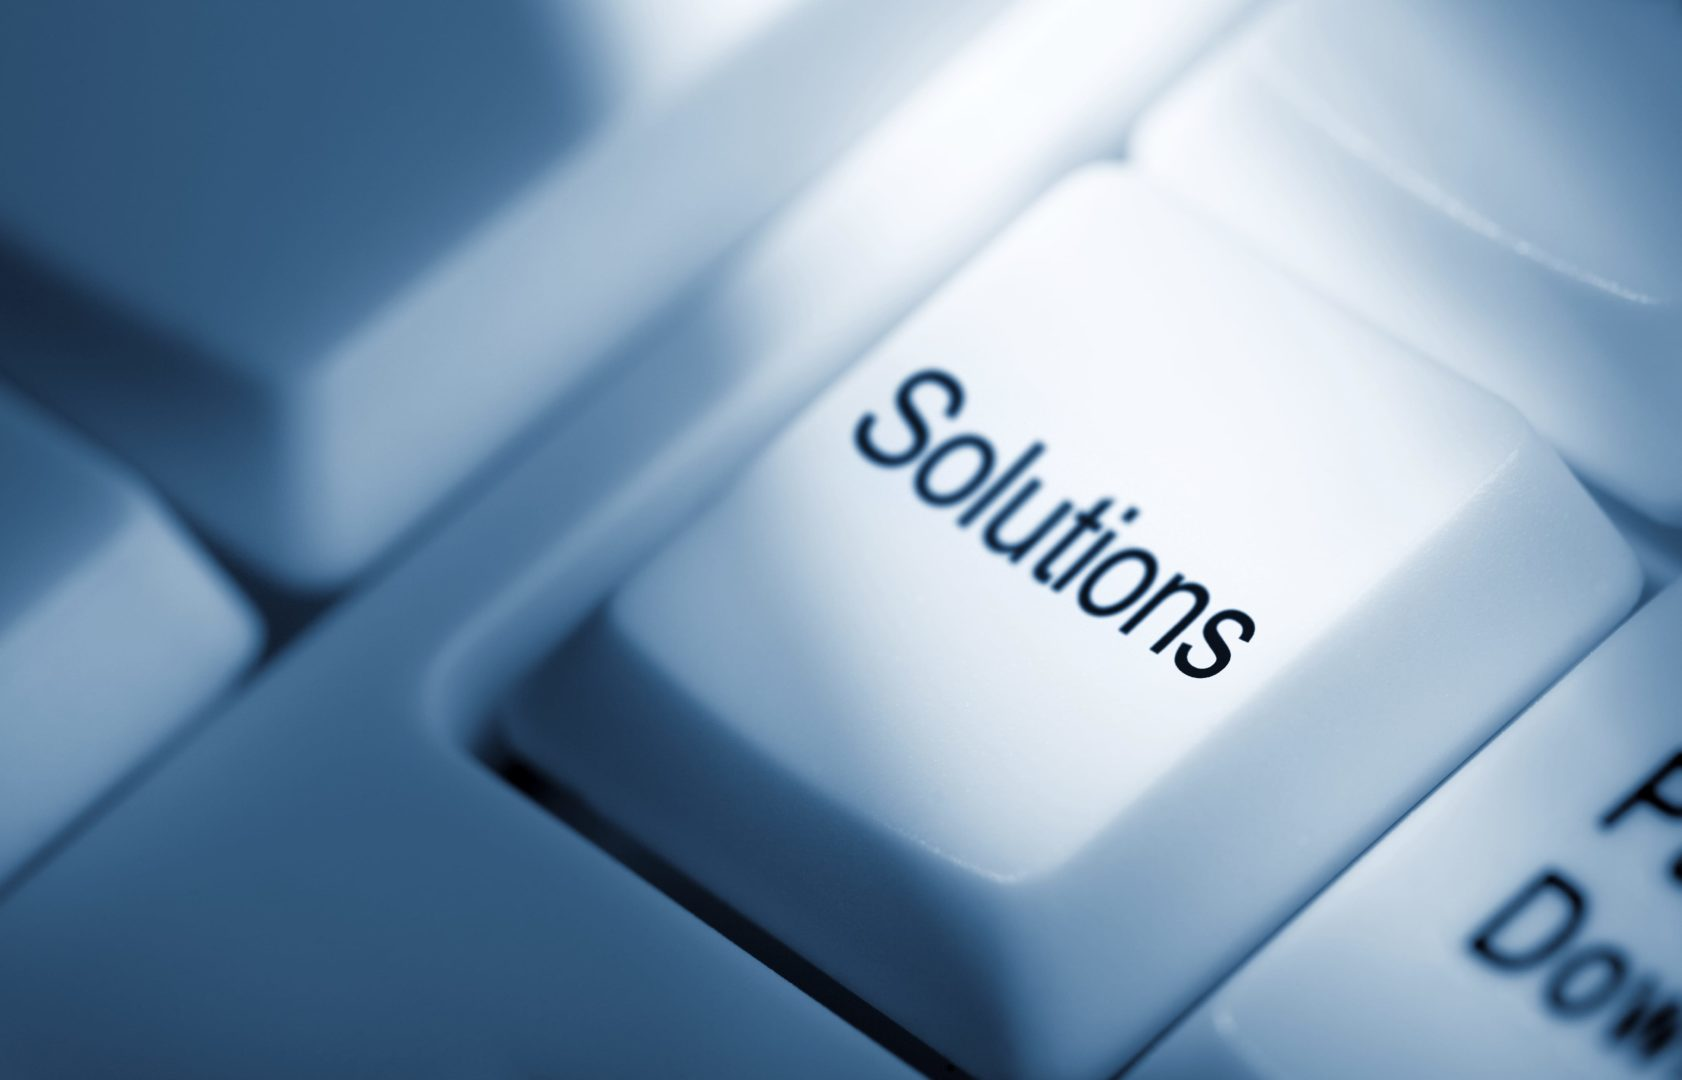 Solutions_000009440149XLarge